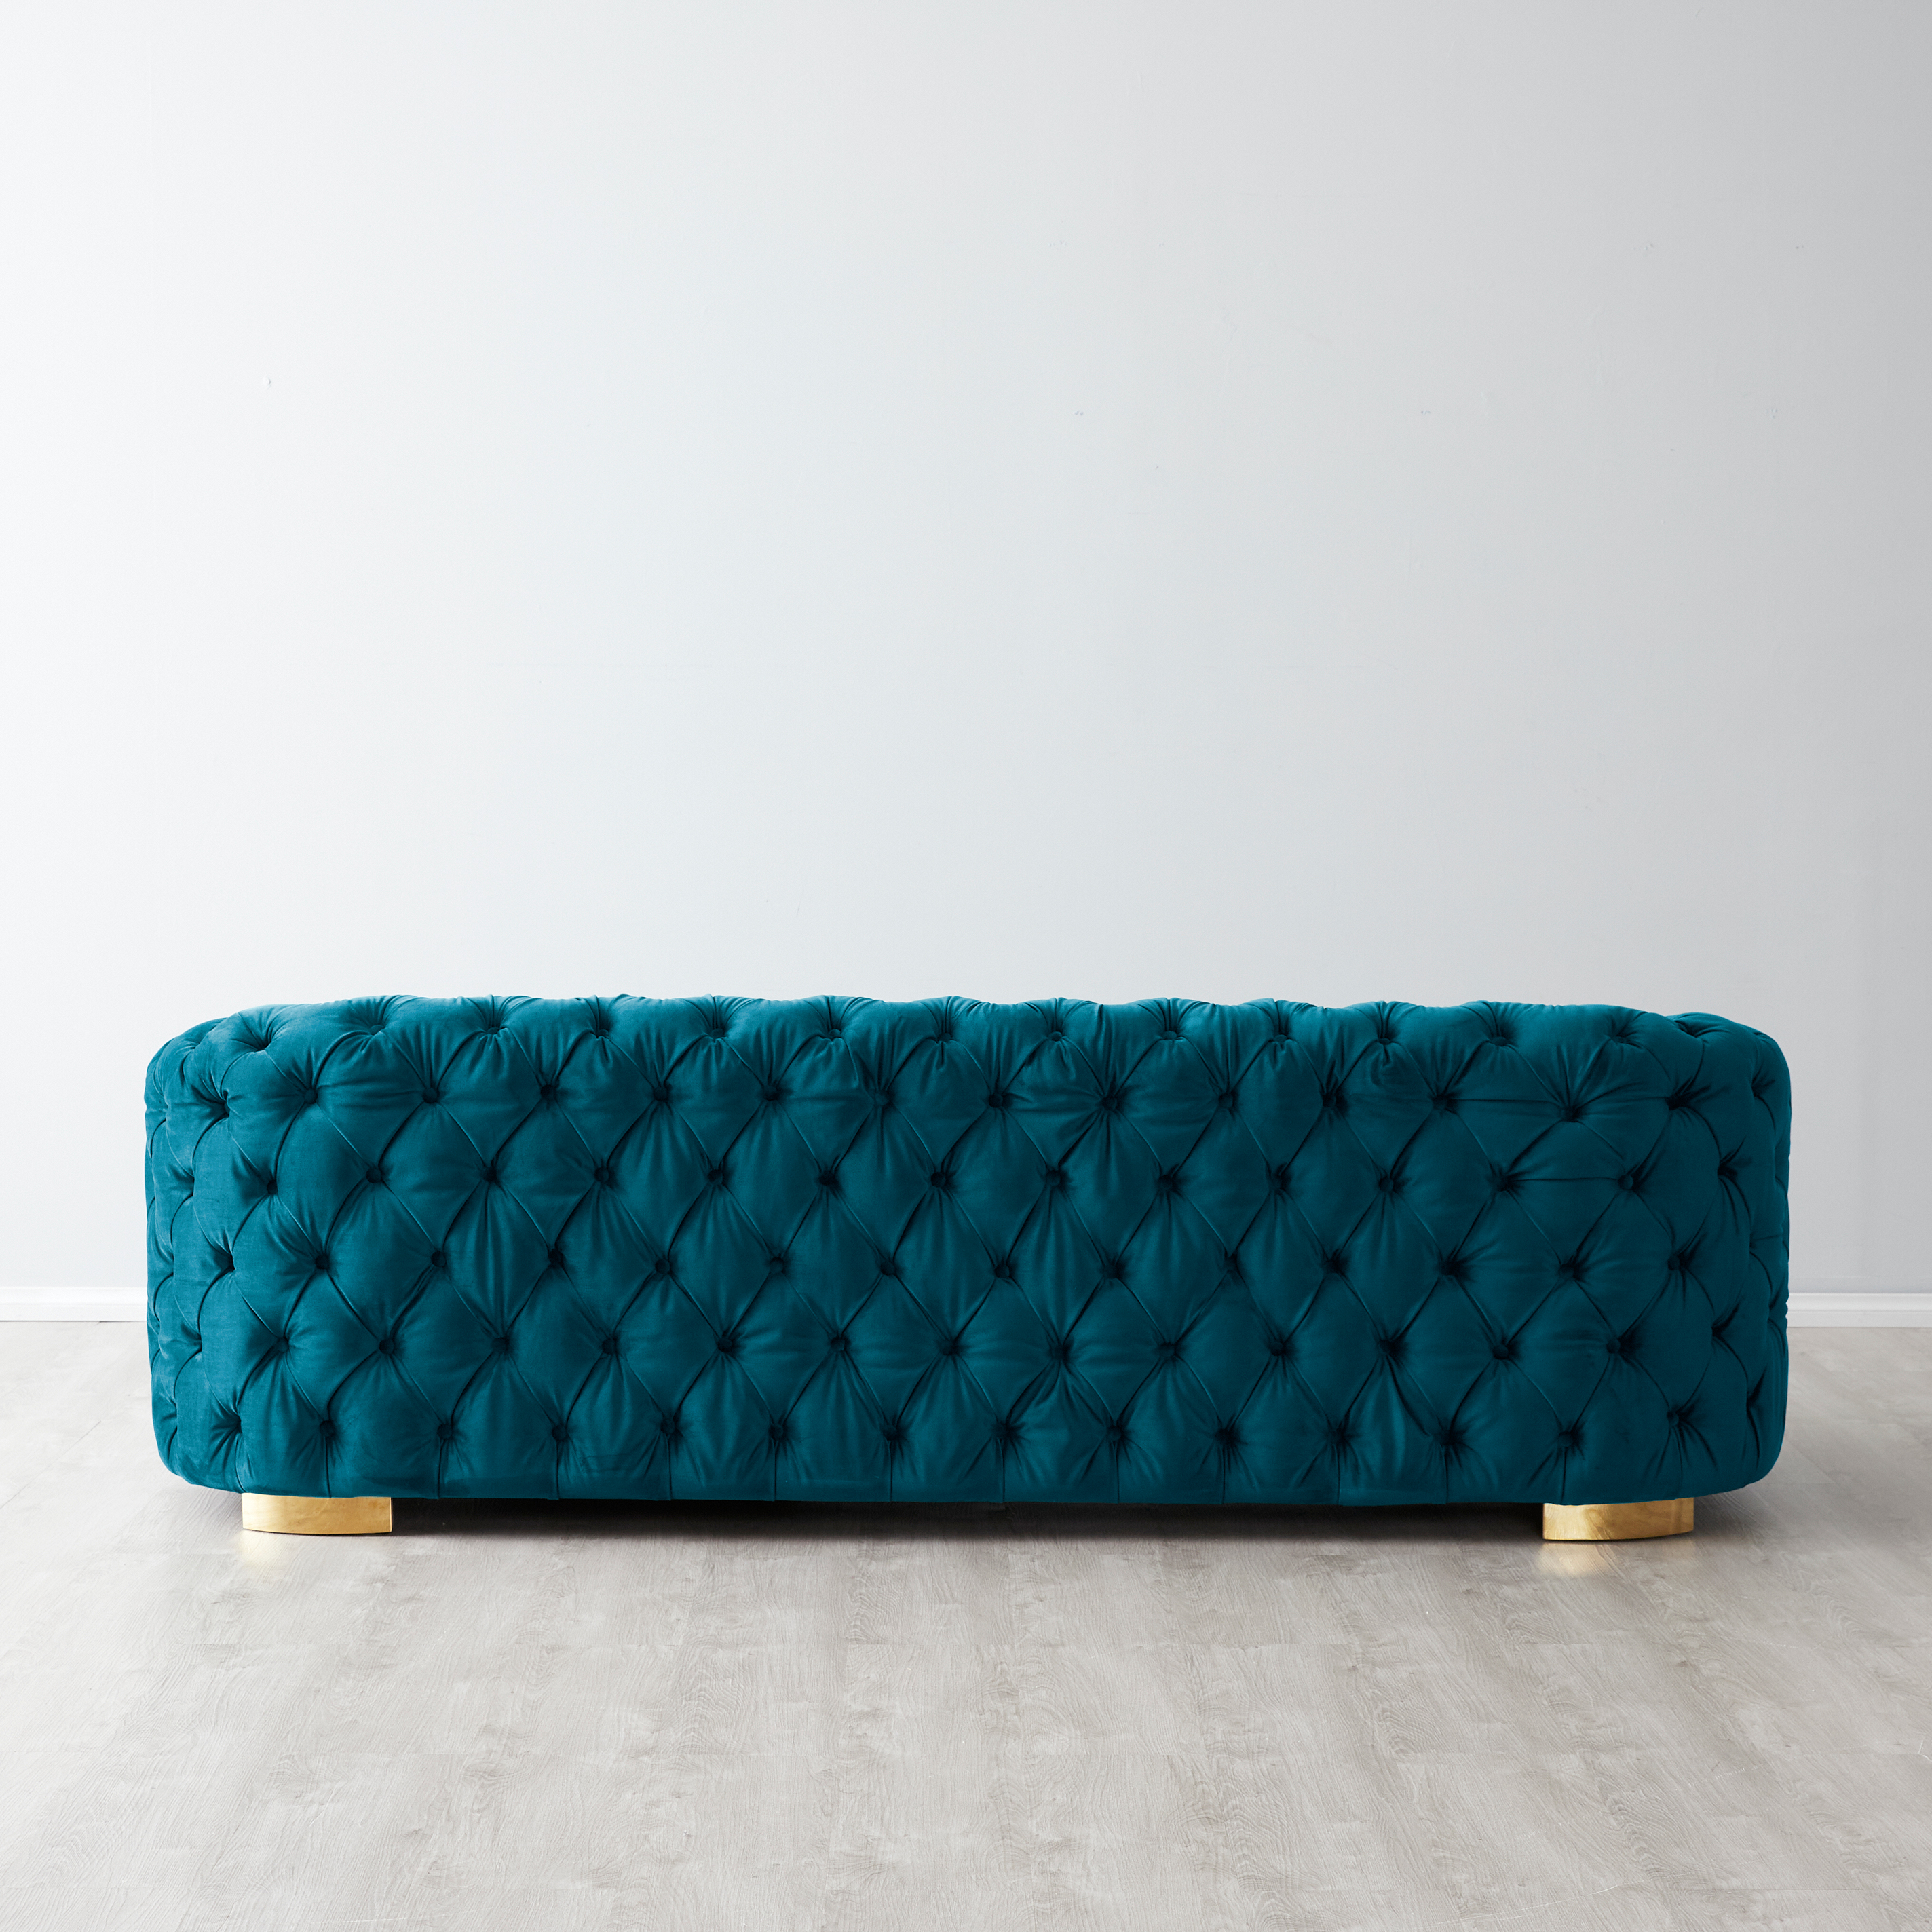 Kelly Sofa - Peacock Blue with Gold Leg